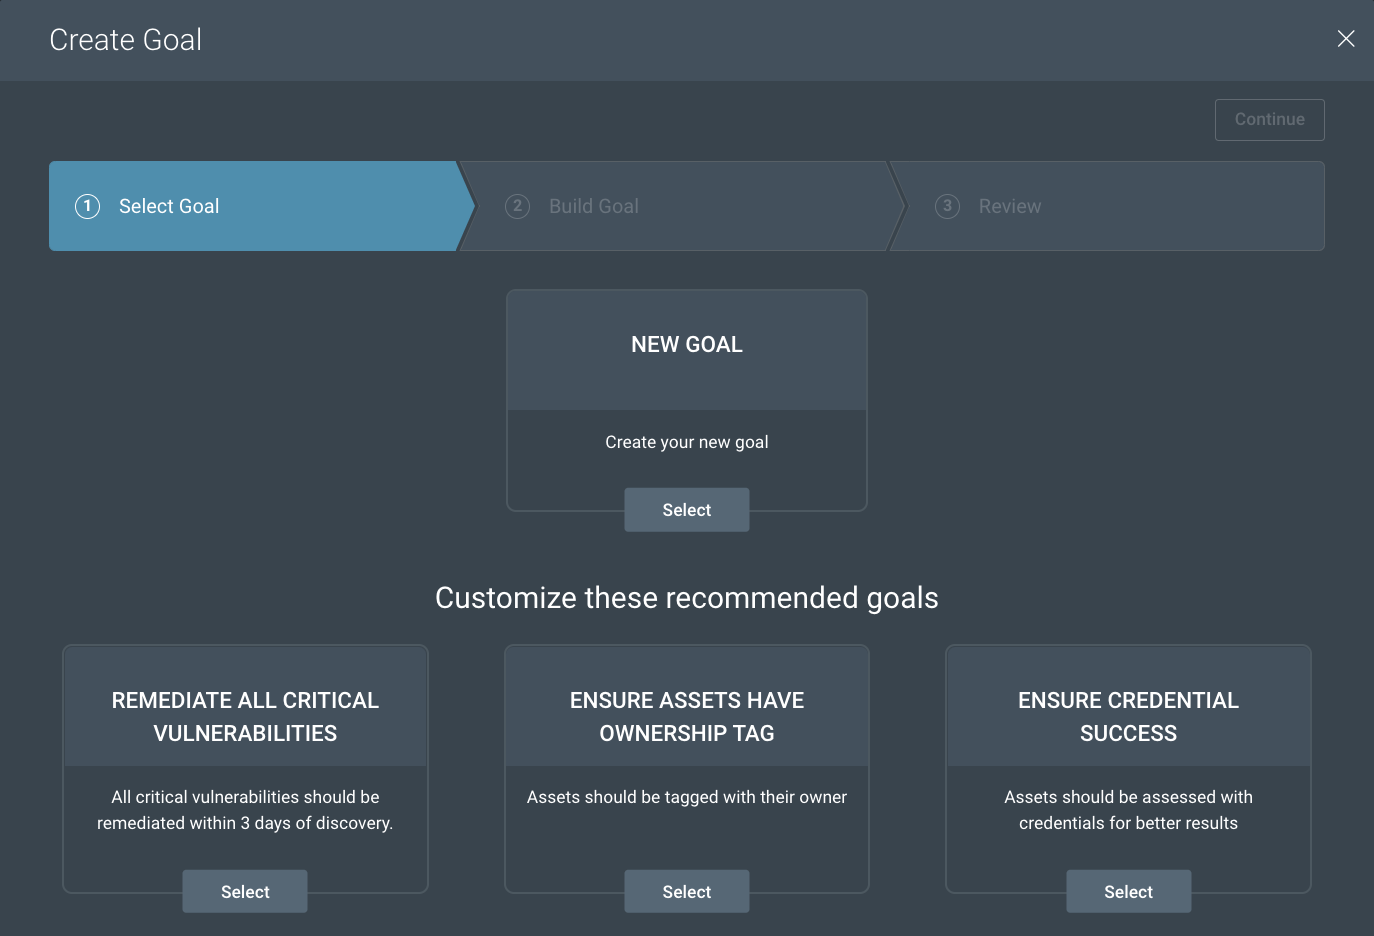 Rapid7 Announces Improvements to Goals and SLAs in InsightVM